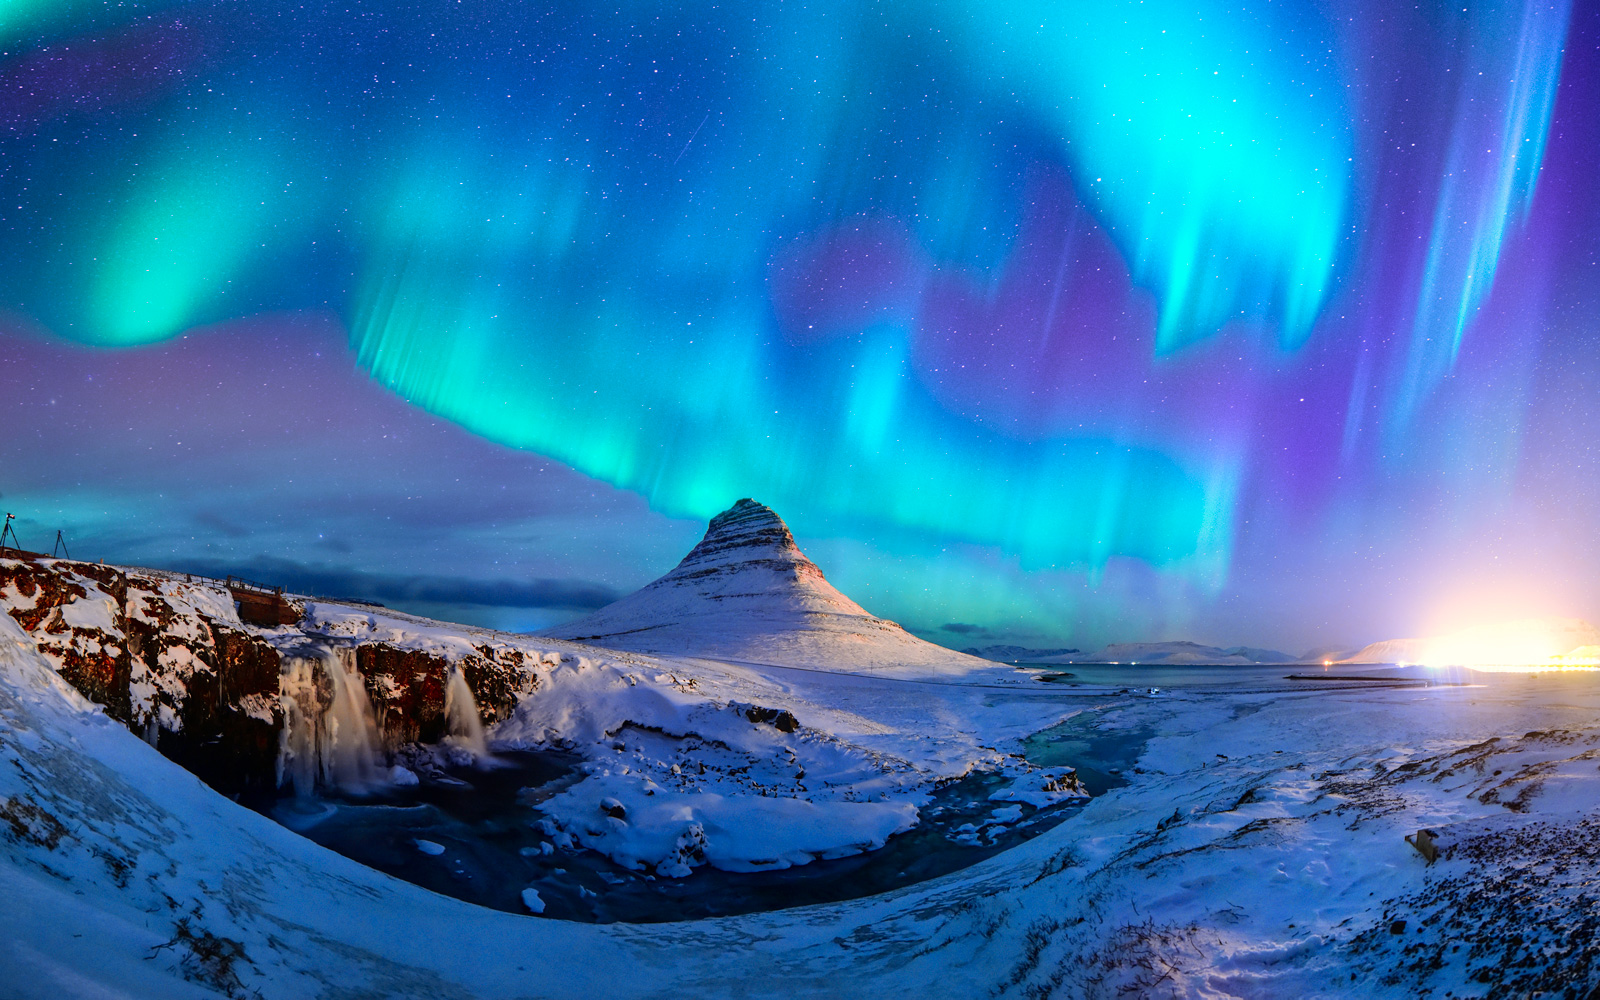 Find cheap flights to Iceland, Europe and Asia from Canada with WOW air. Explore our destinations and book the best flight deals directly from our website.